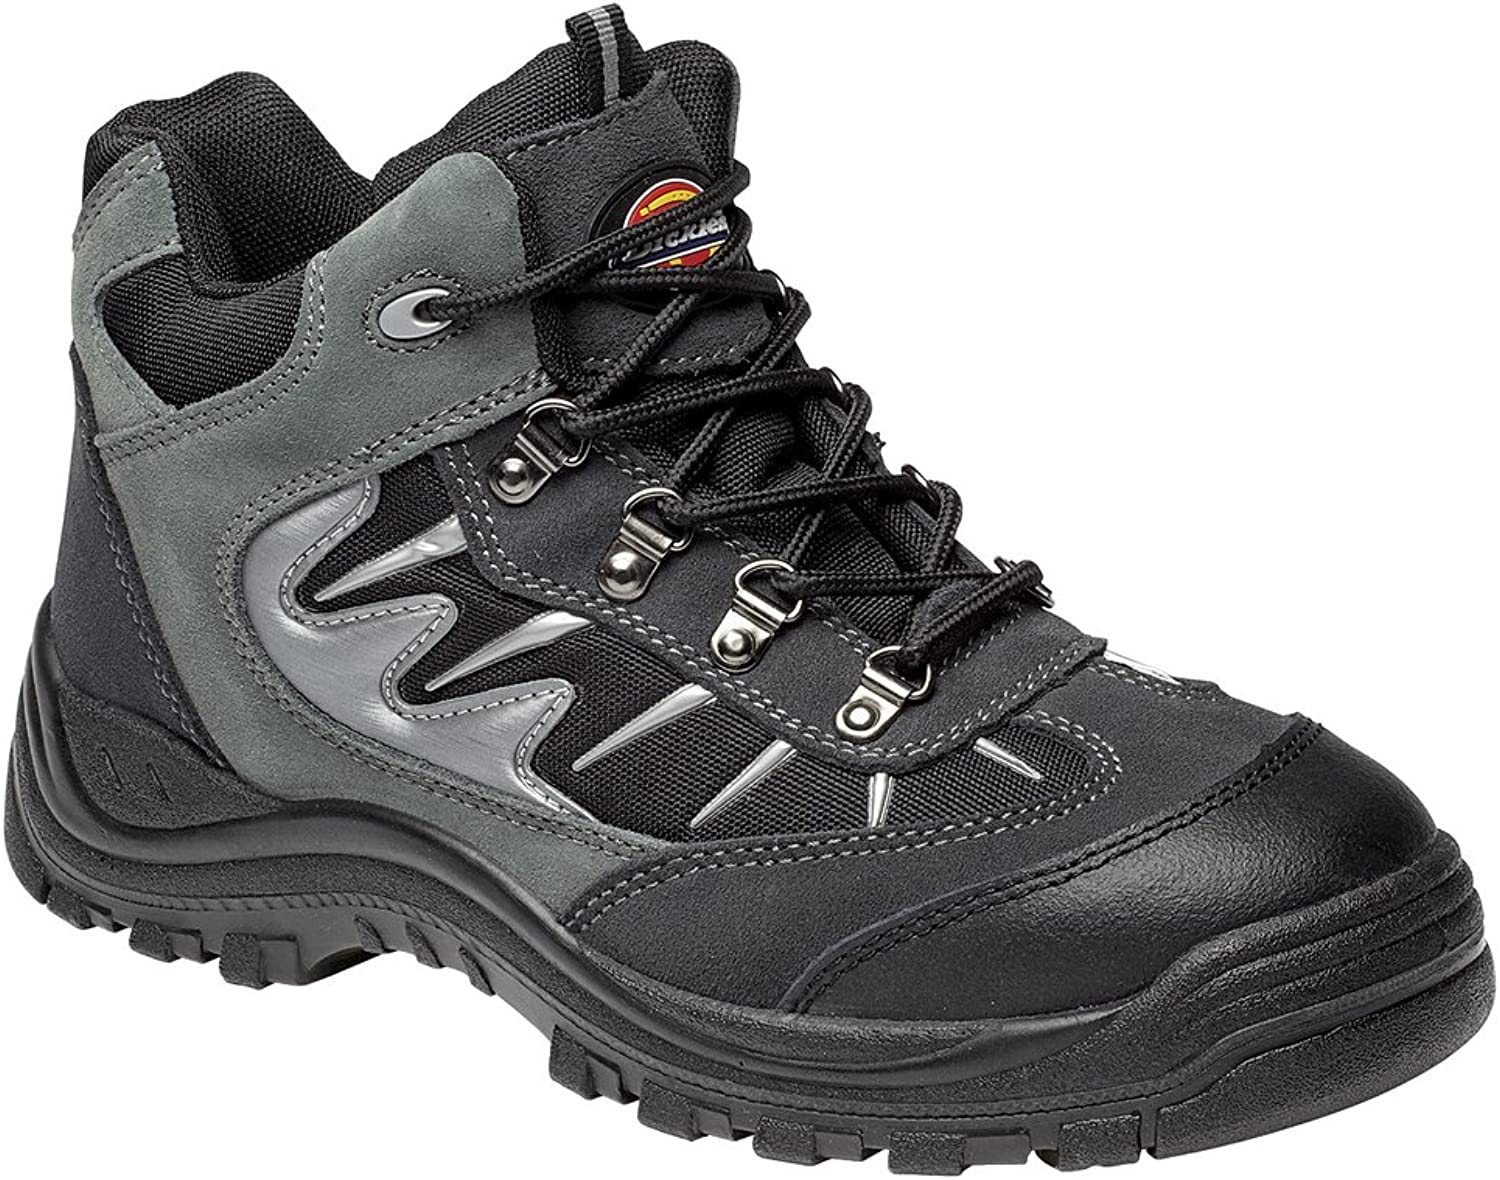 Dickies Storm super safety trainer (FA23385A)